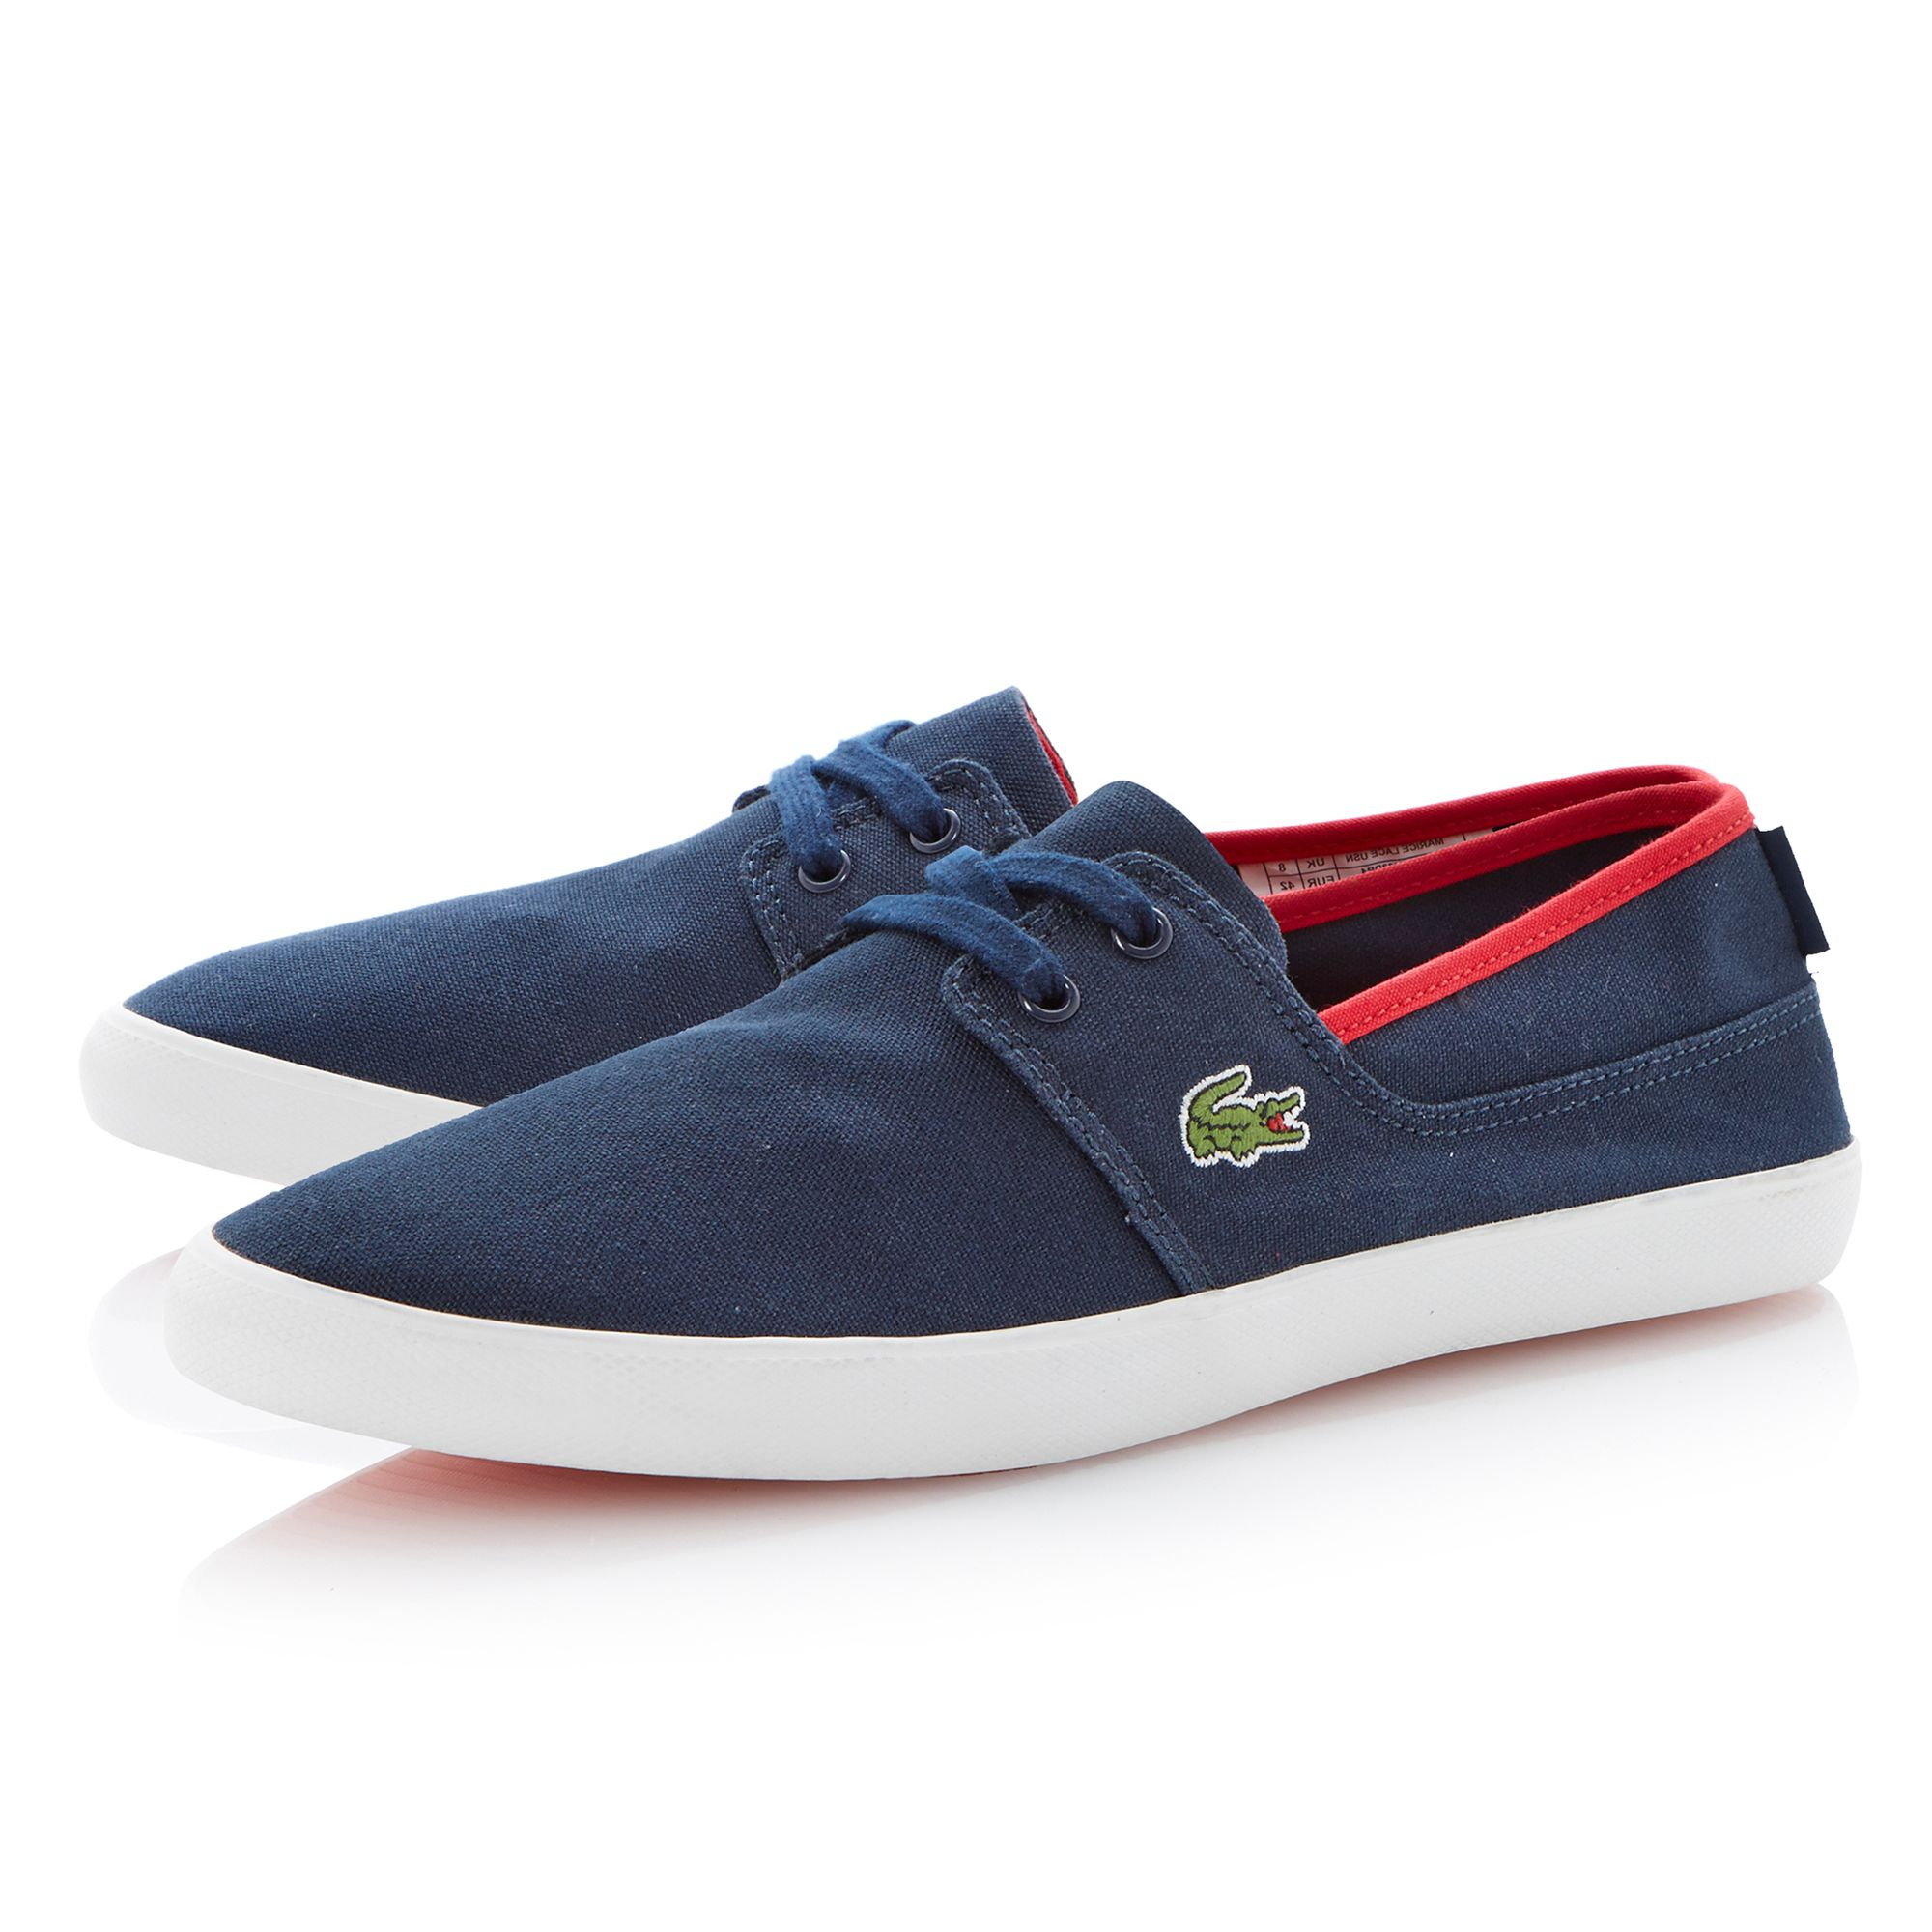 Lacoste Marice Lace Up Boat Style Shoes In Blue For Men Lyst